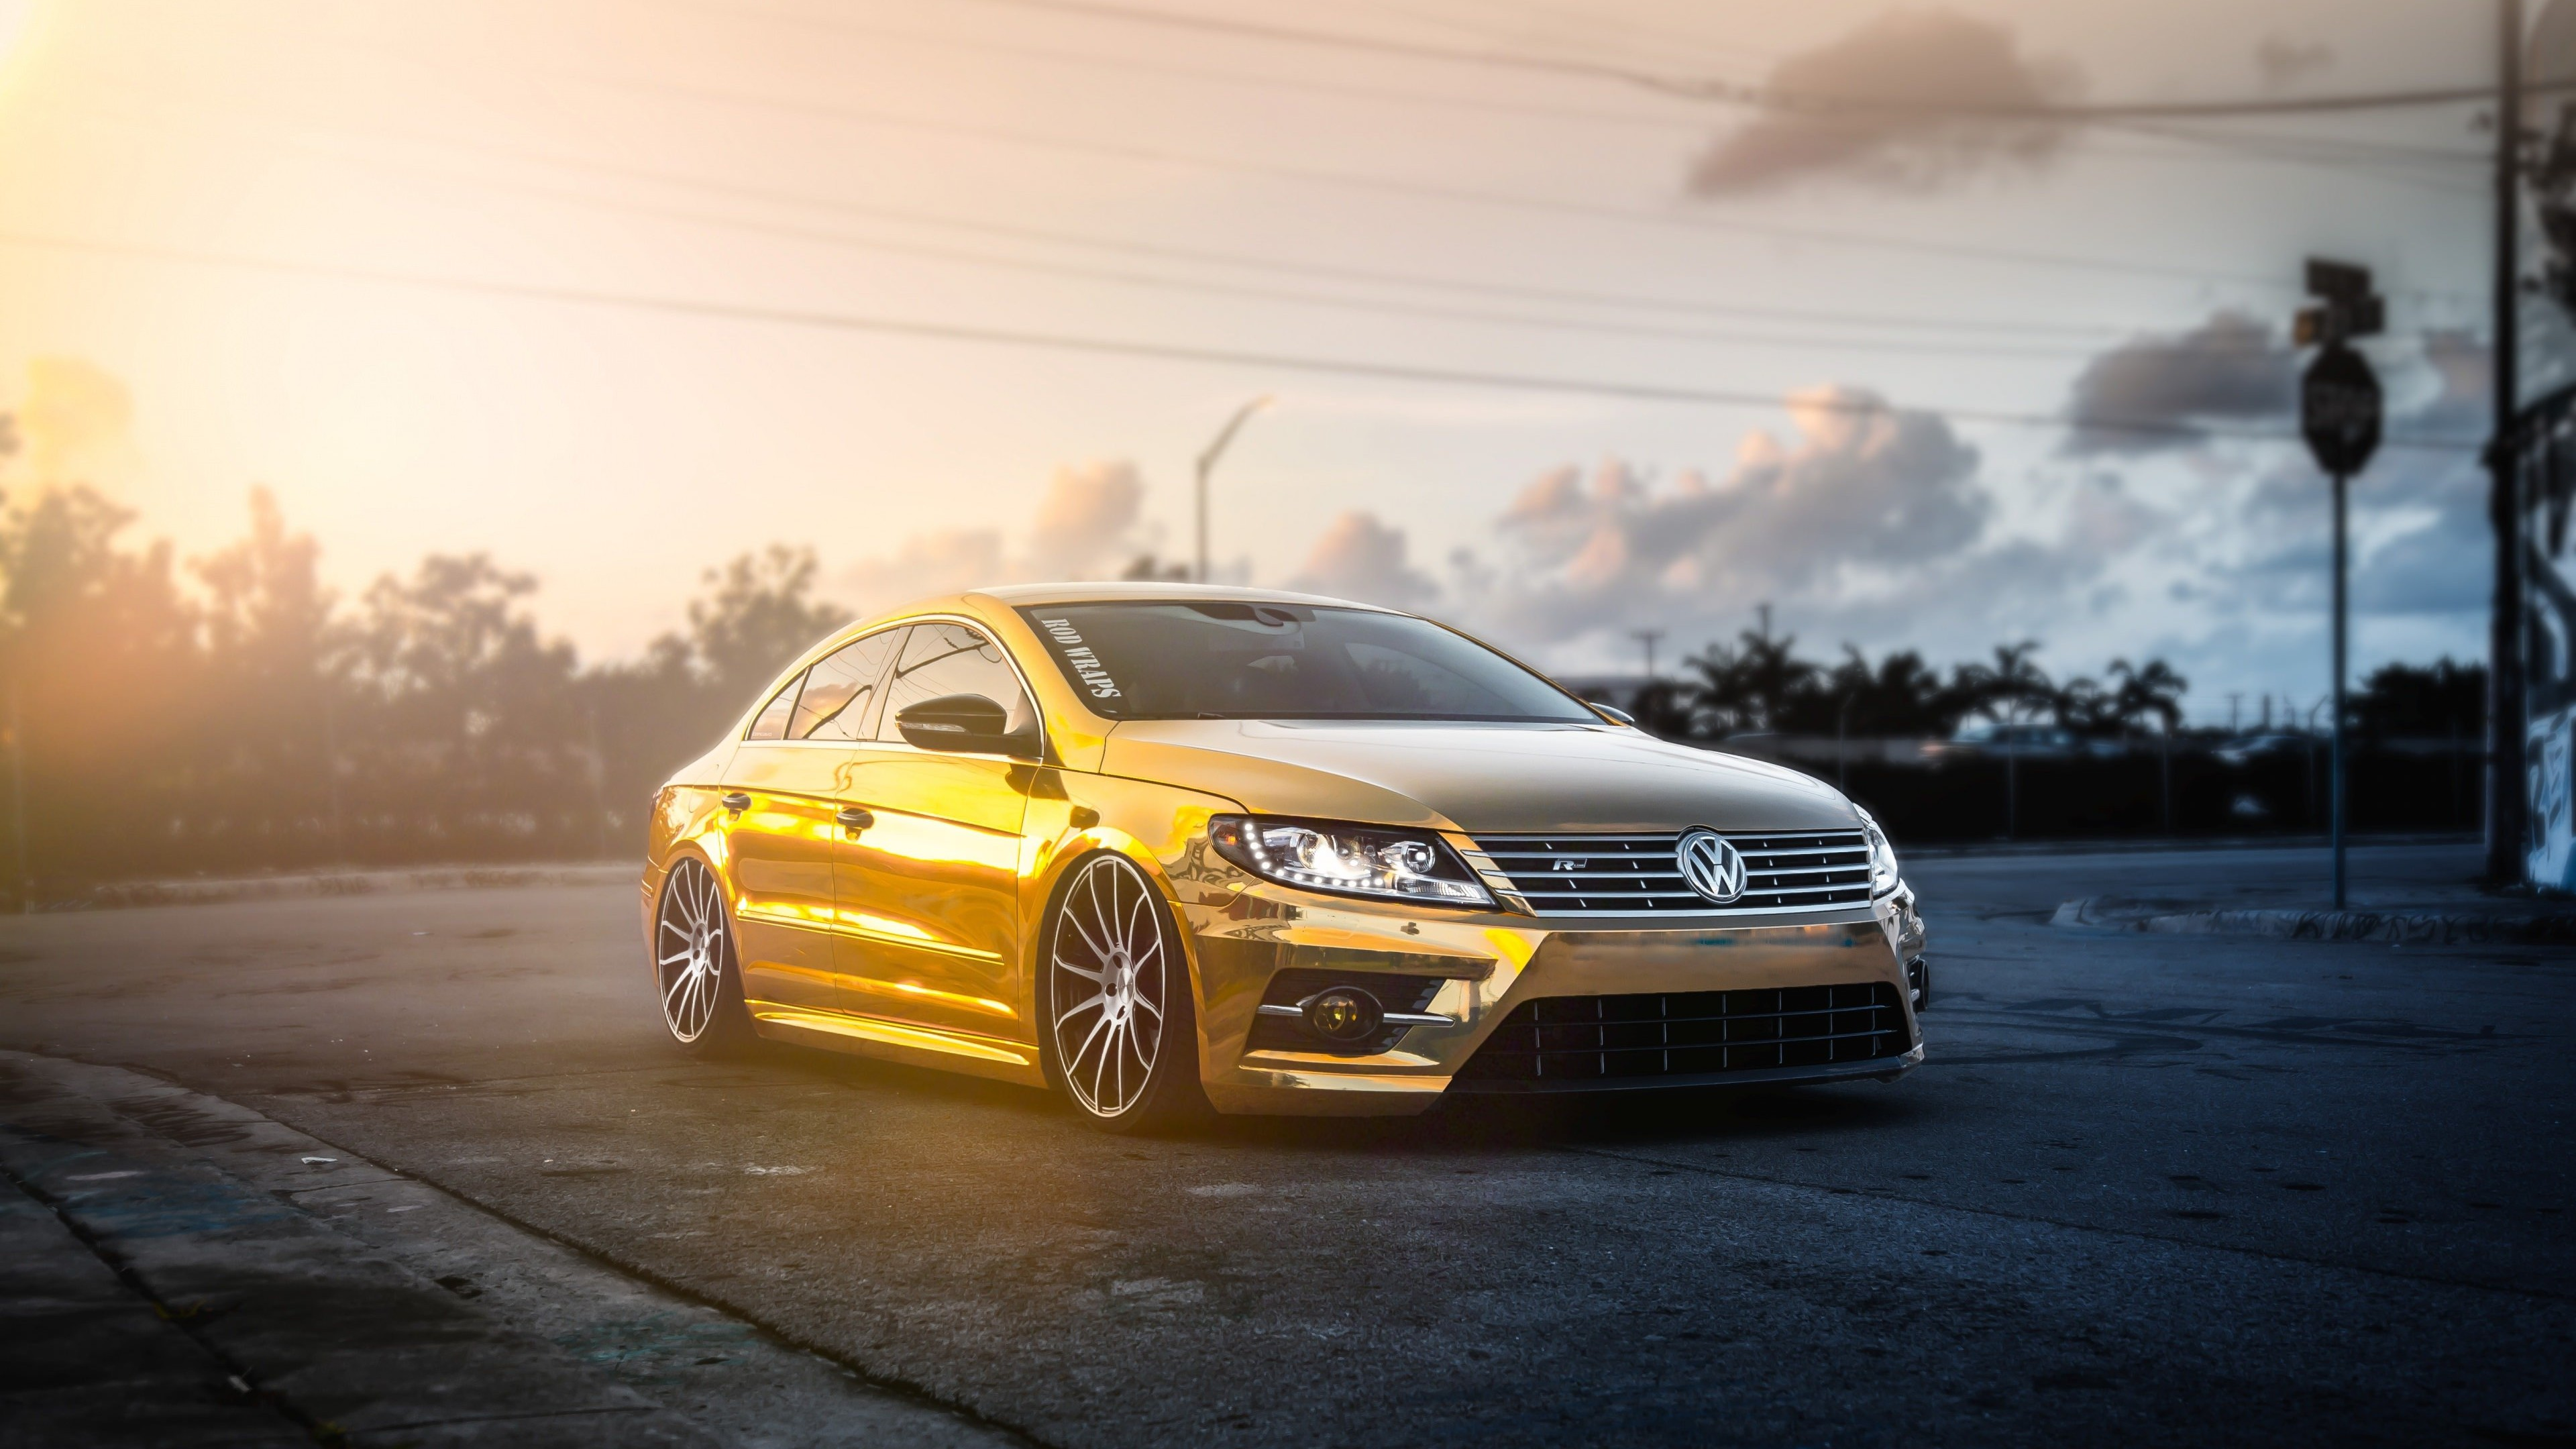 Golden Volkswagen Passat CC Wallpaper for Desktop 4K 3840x2160